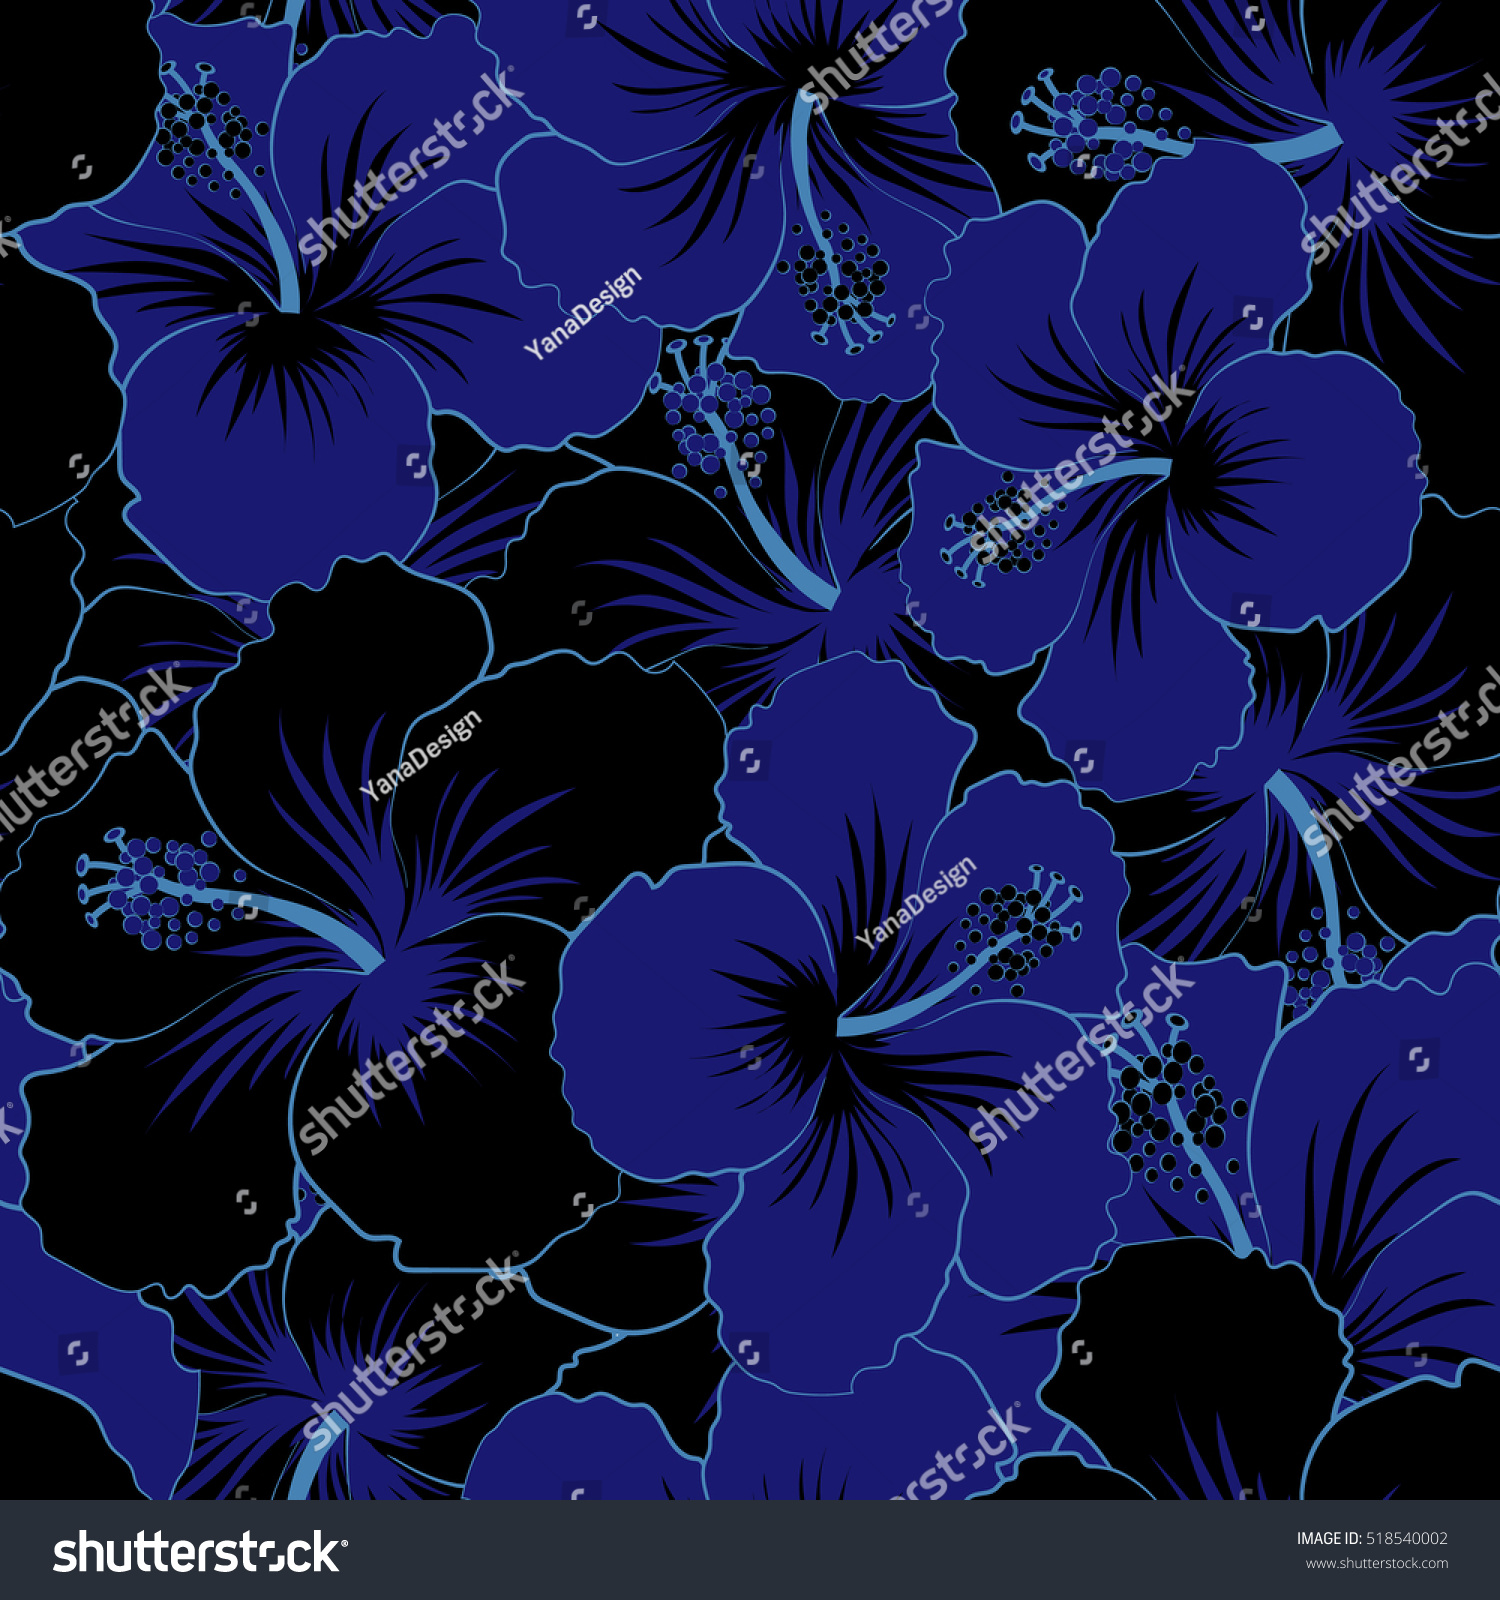 Vector Hibiscus Flower Seamless Pattern In Black And Violet Colors